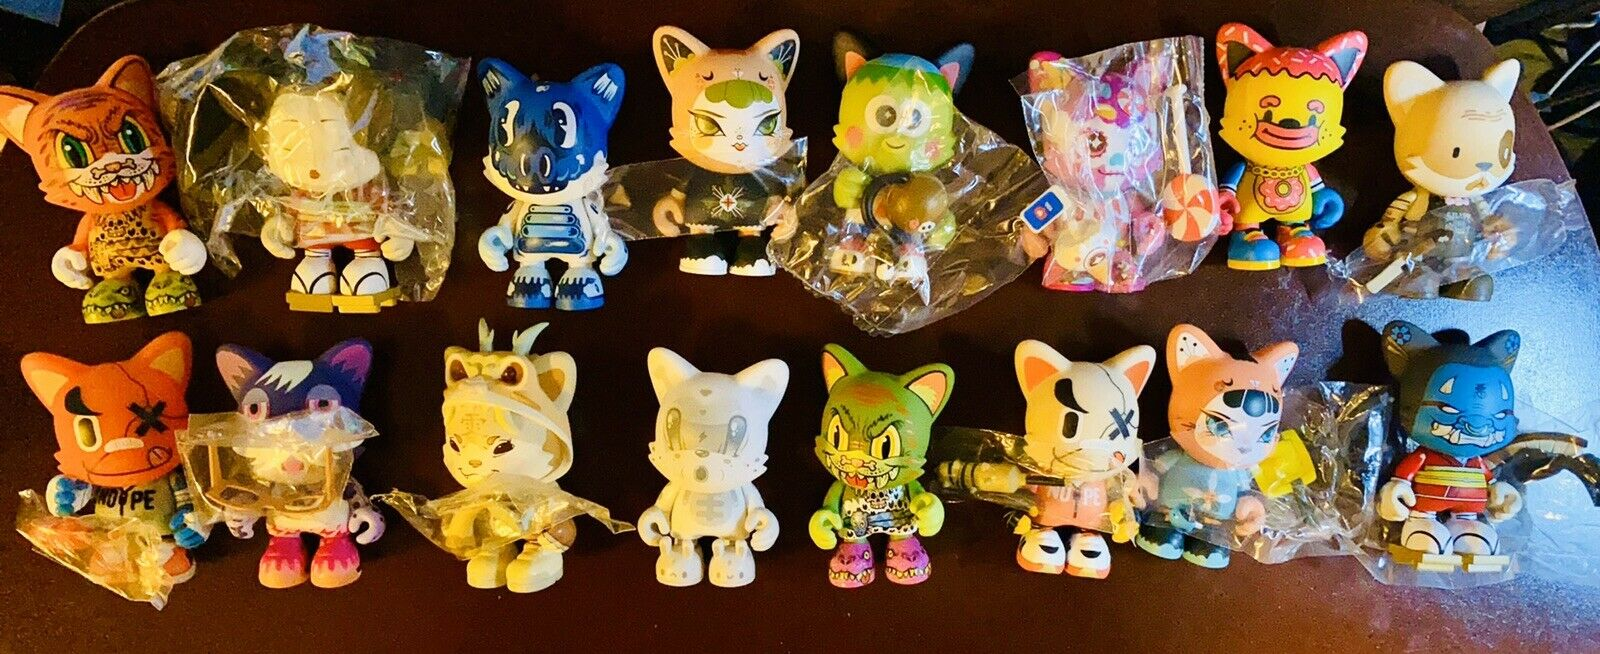 SUPERPLASTIC JANKY SERIES TWO -  LOT OF 16 FIGURES COLLECTION, CHASES